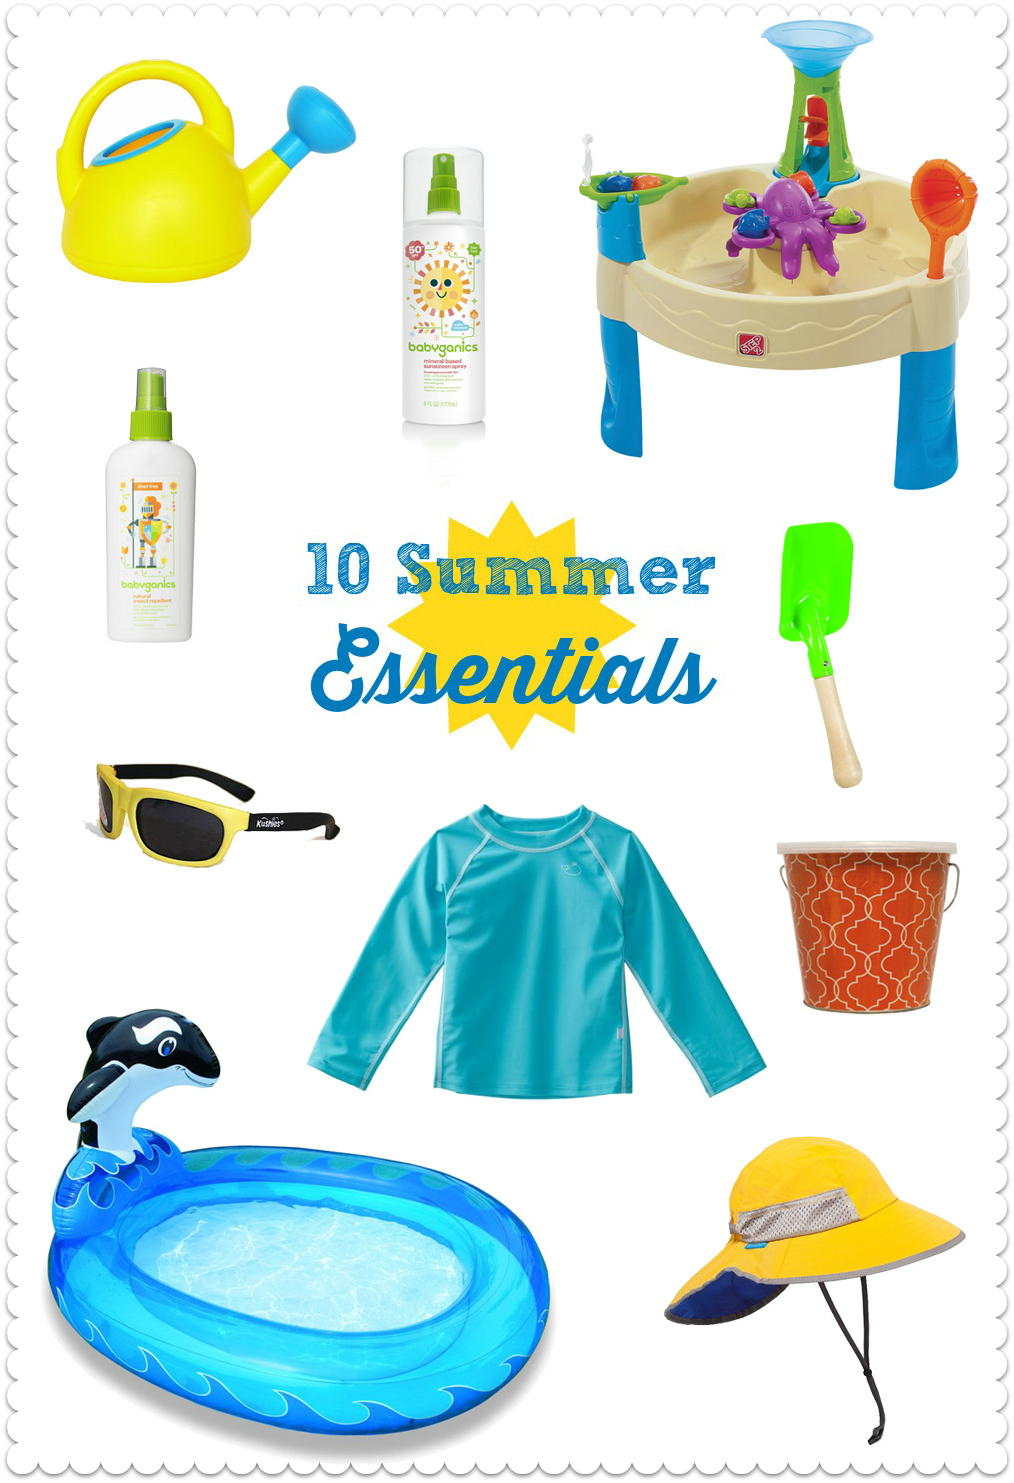 10 Essentials for a Safe, Fun Summer